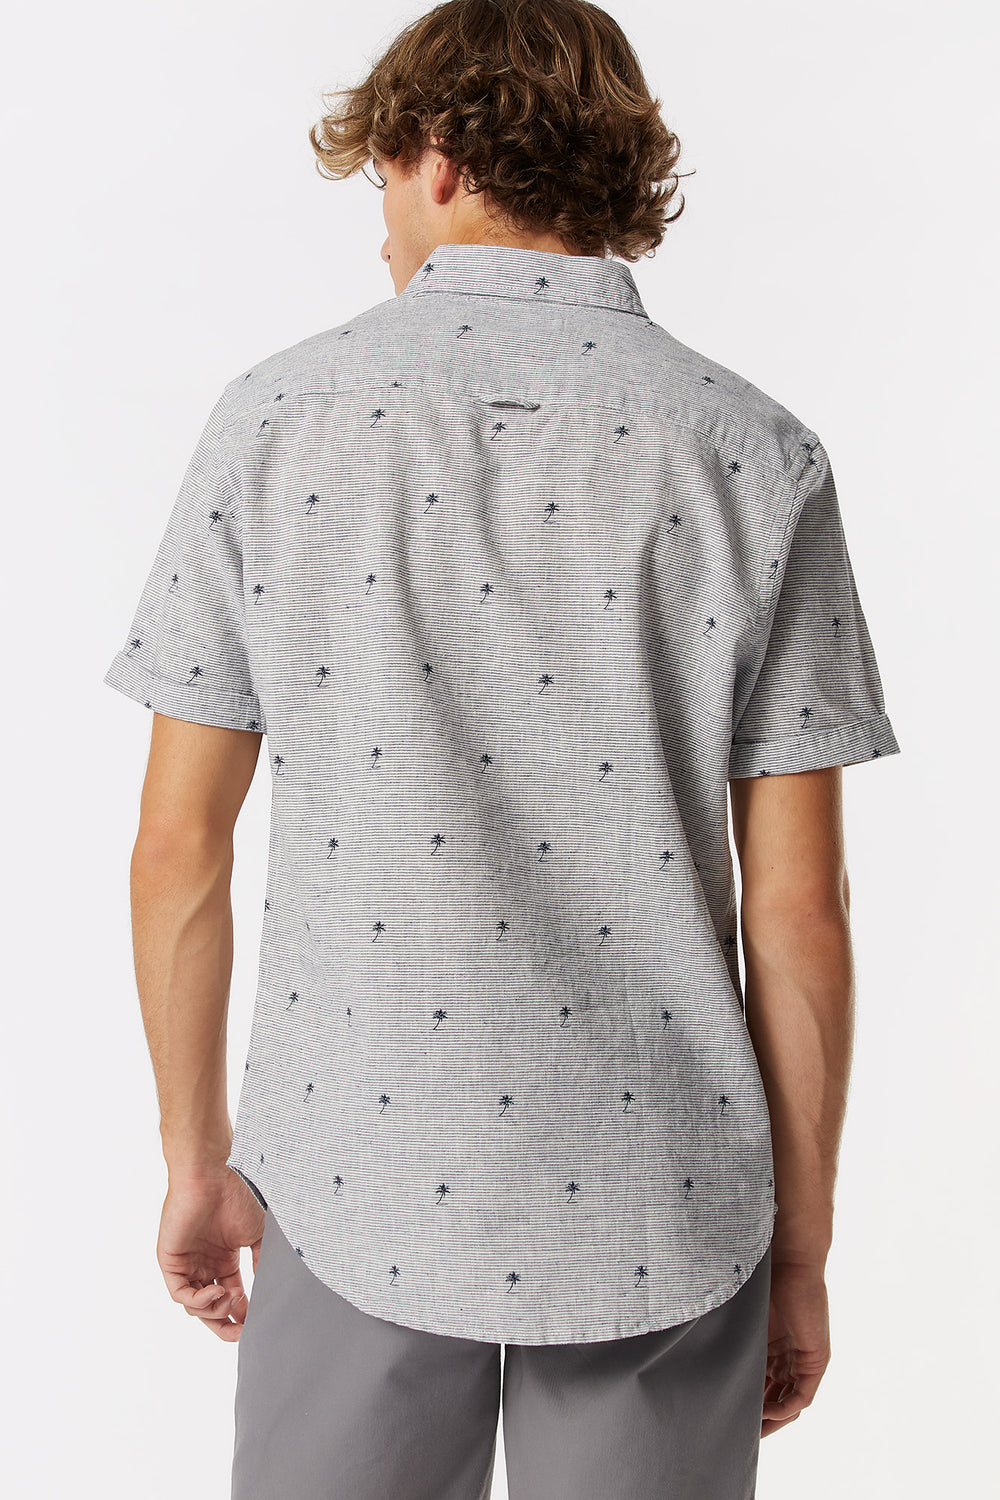 Linen Palm Tree Printed Button-Up Short Sleeve Top Light Blue